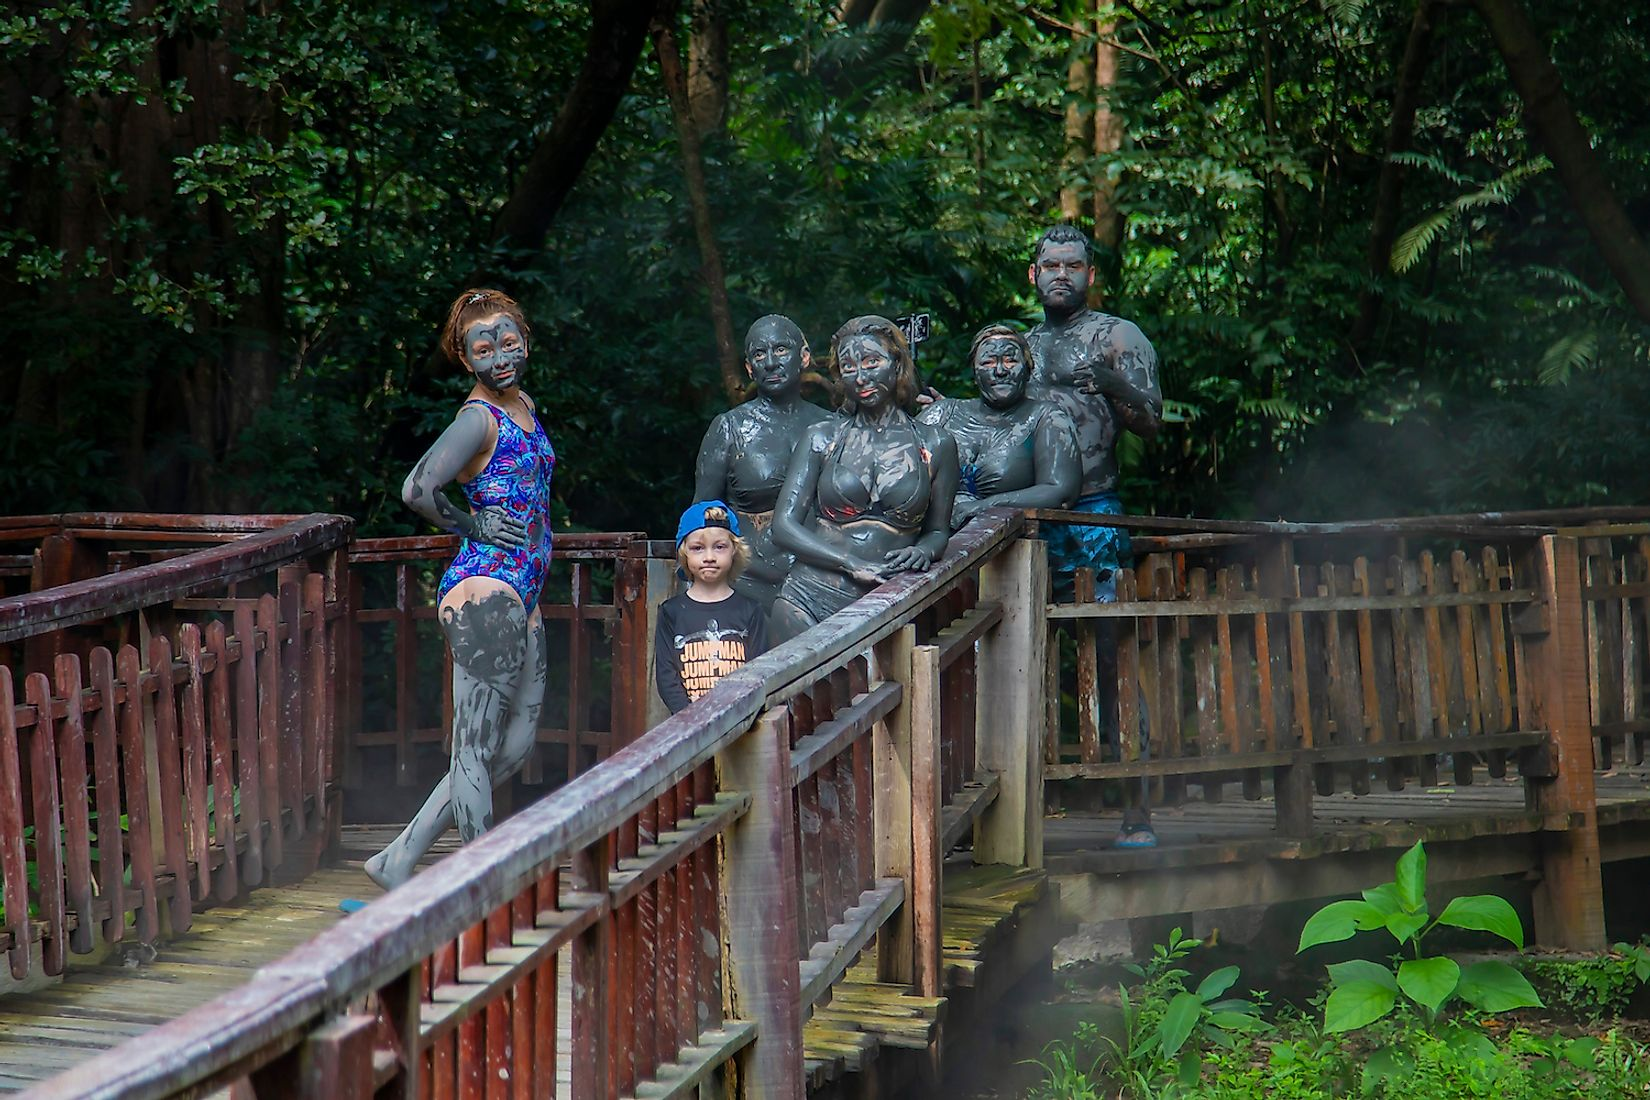 Tourists vacationing in the hot springs on Mount Borinken Costa Rica. Image credit: Xenia_Photography/Shutterstock.com